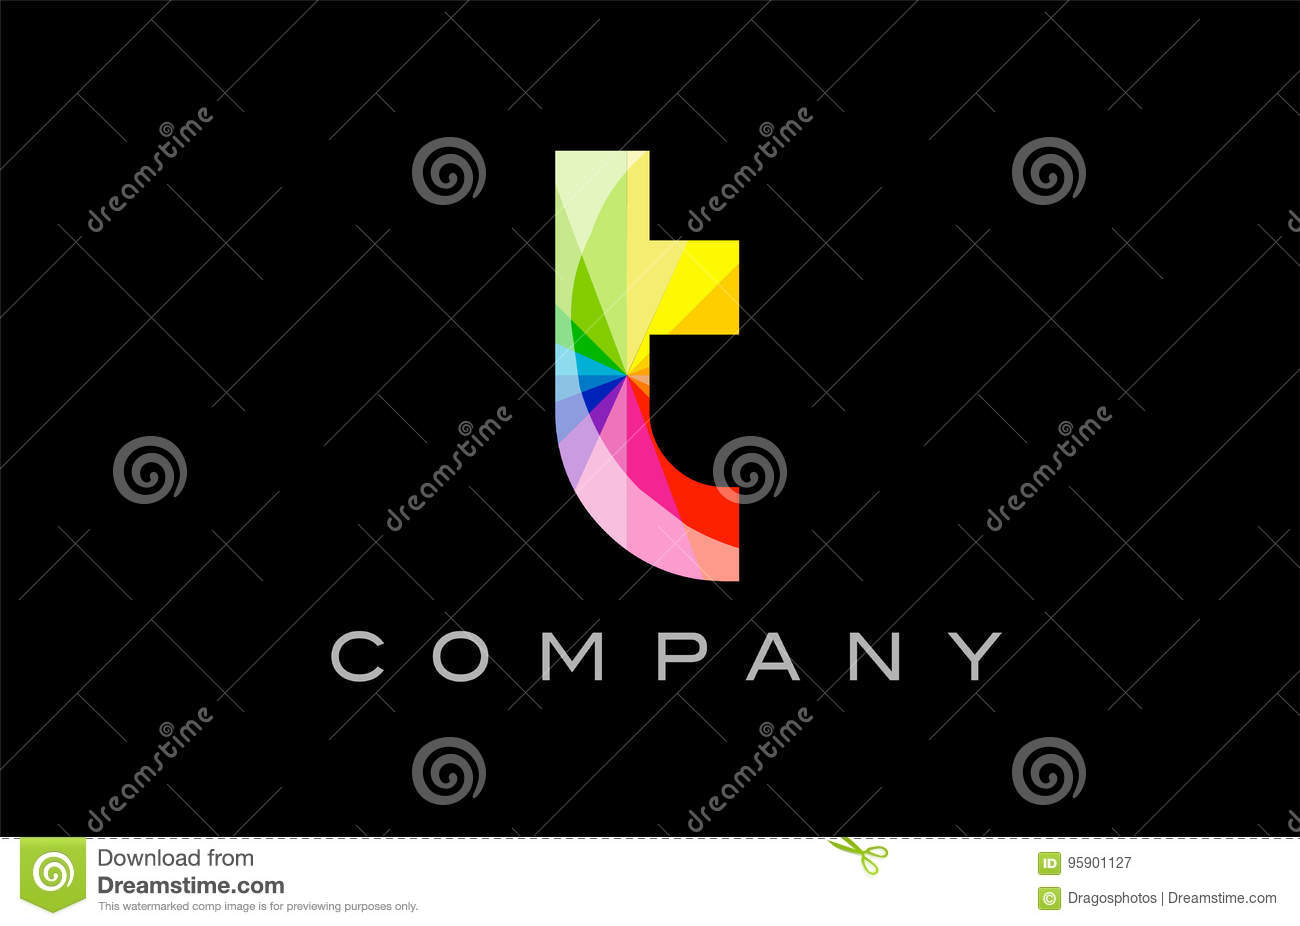 87947285 T alphabet letter mosaic rainbow logo vector creative company icon design  template color colorful black background